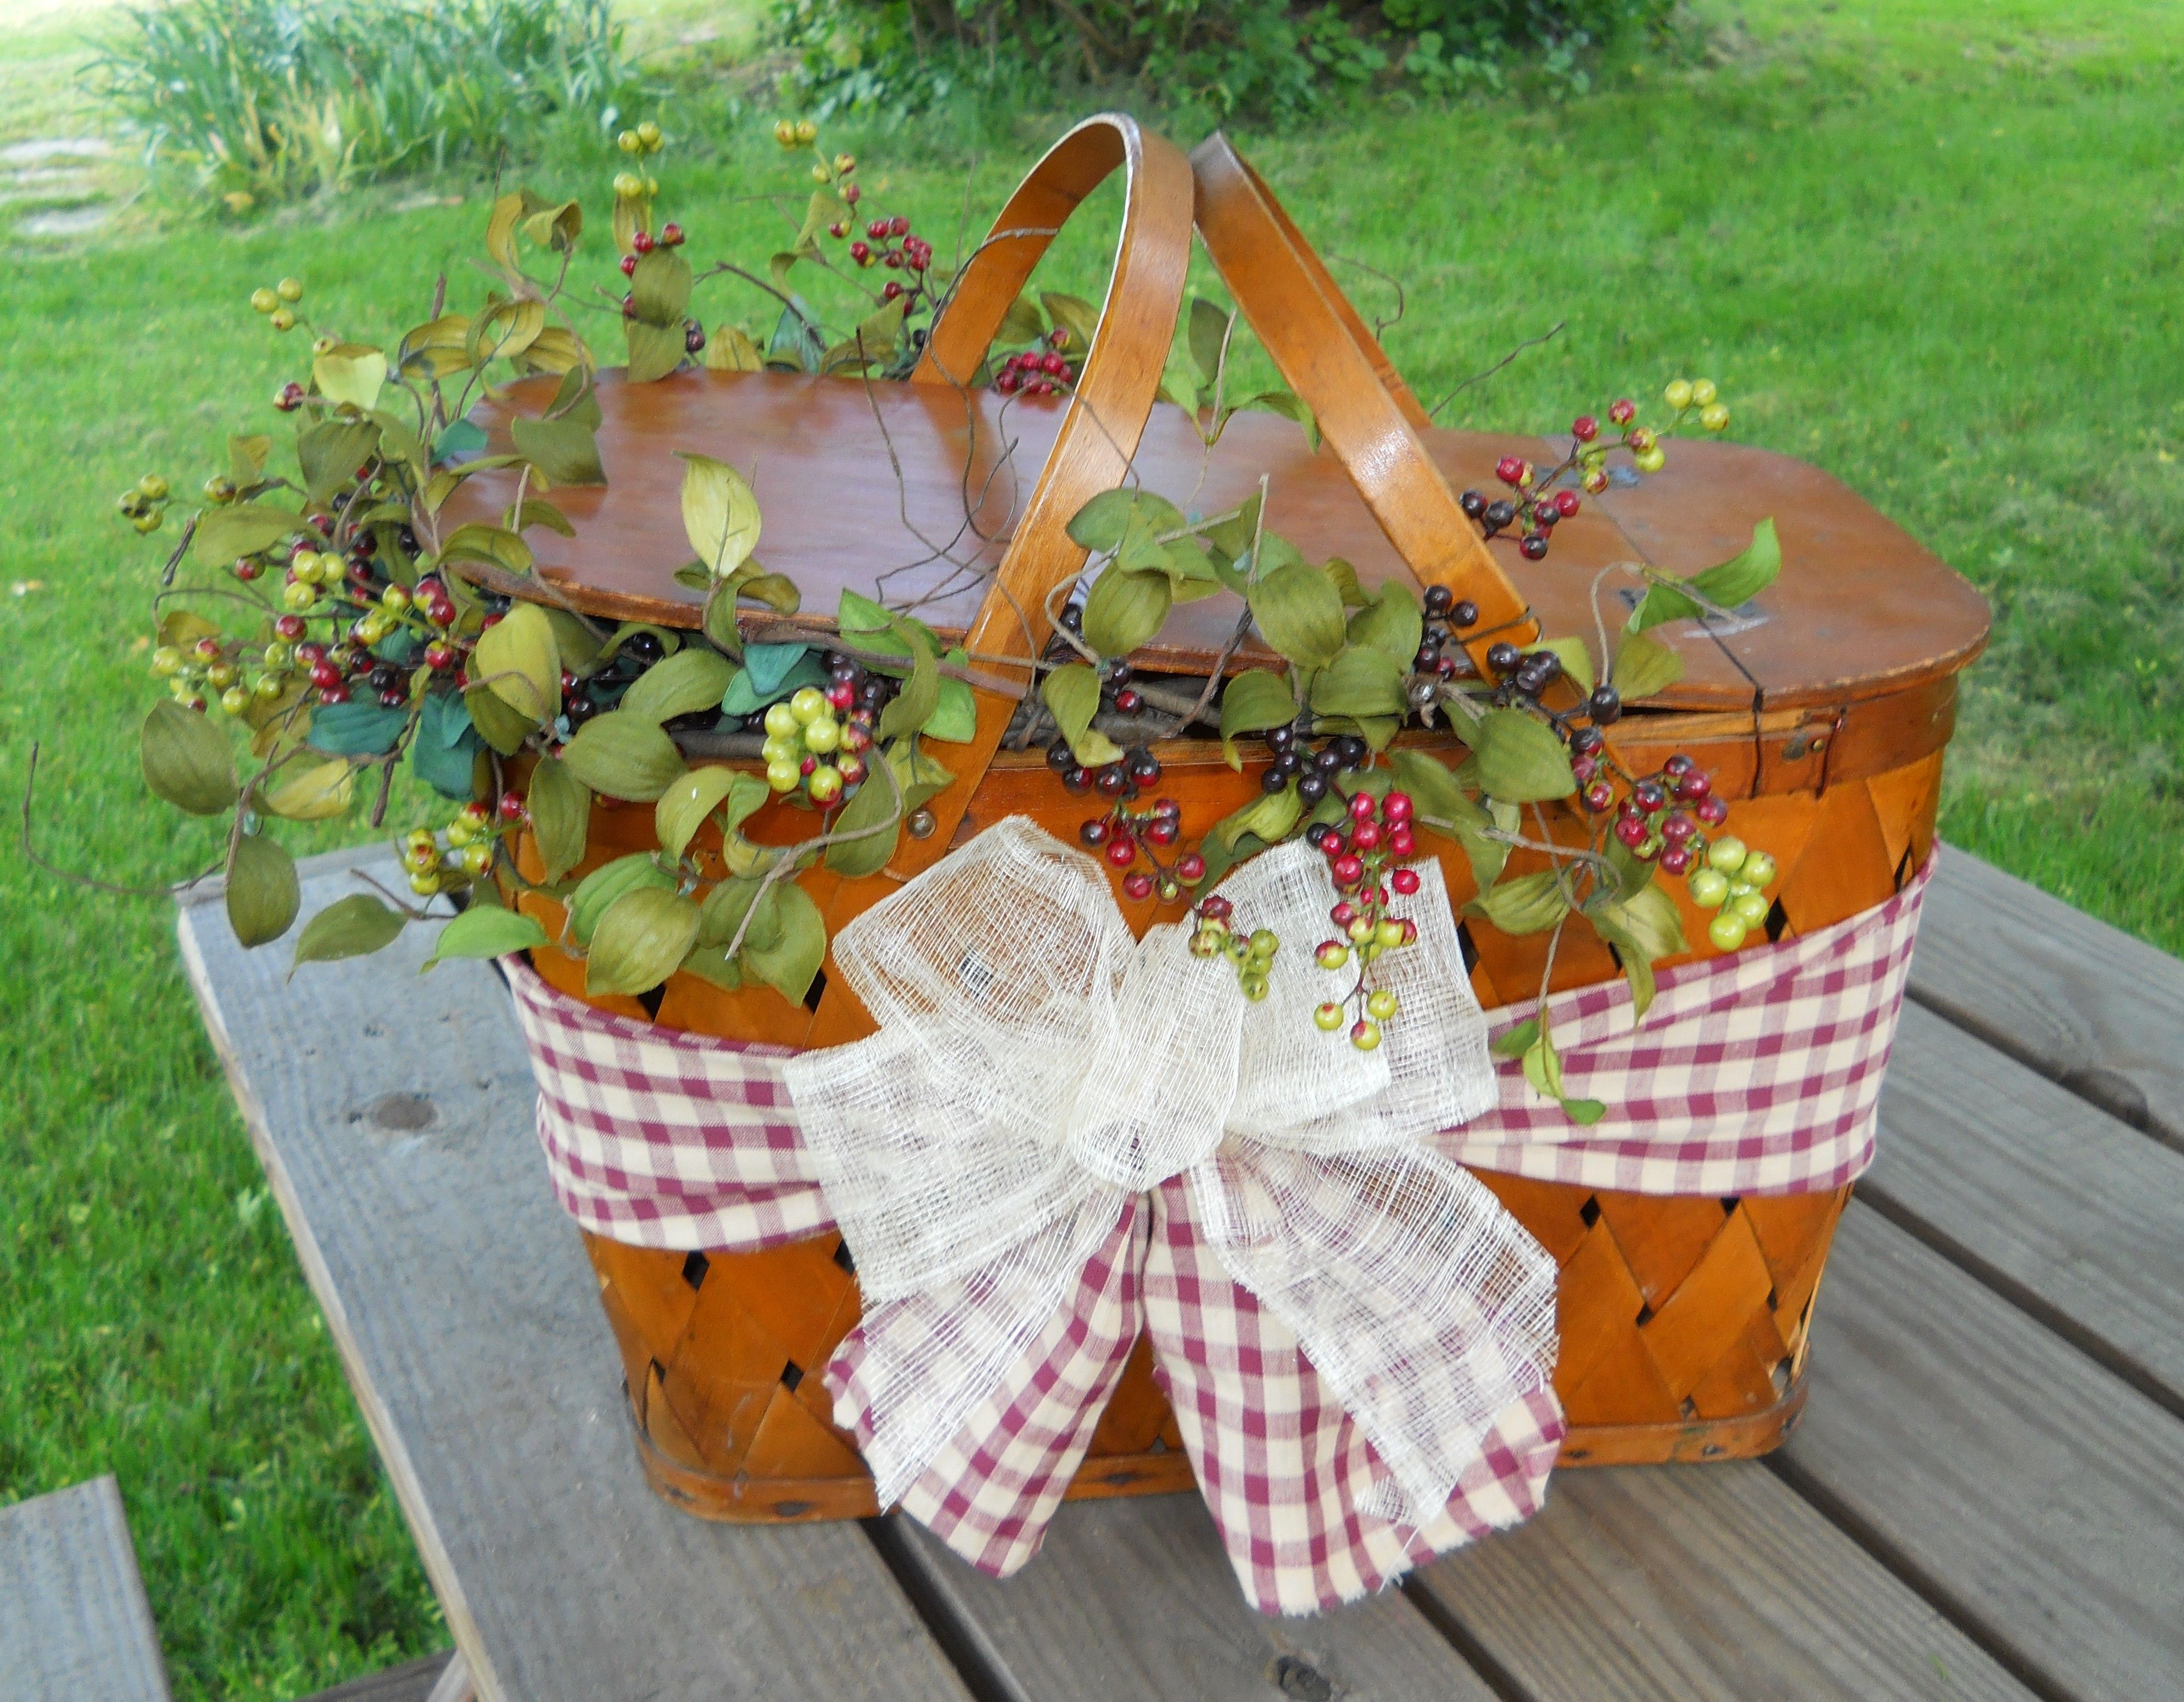 Decorated Picnic Basket By Country Craft House